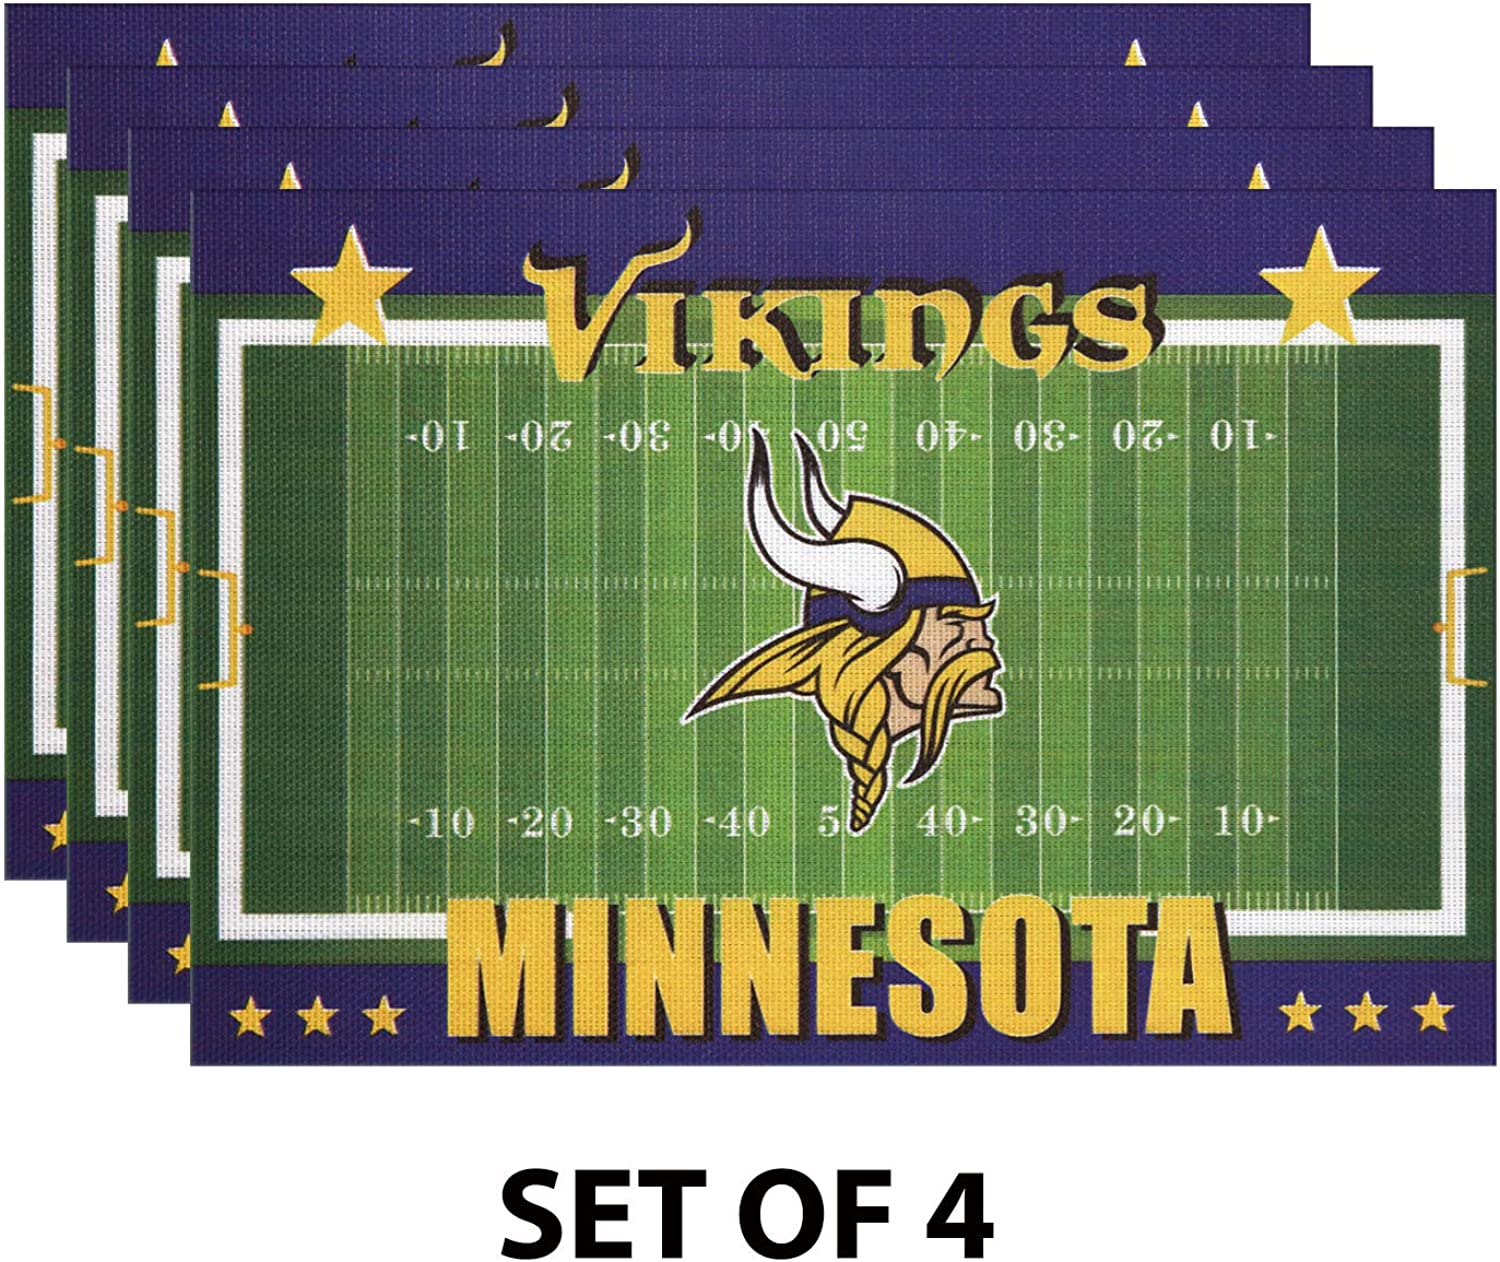 MT-Sports Football Team Logo 4 Pcs PVC Placemats Mats Pads Coasters Heat Resistant Stain Mats 12X18 Inch for Fan Kitchen Dining Coffee Table Decration